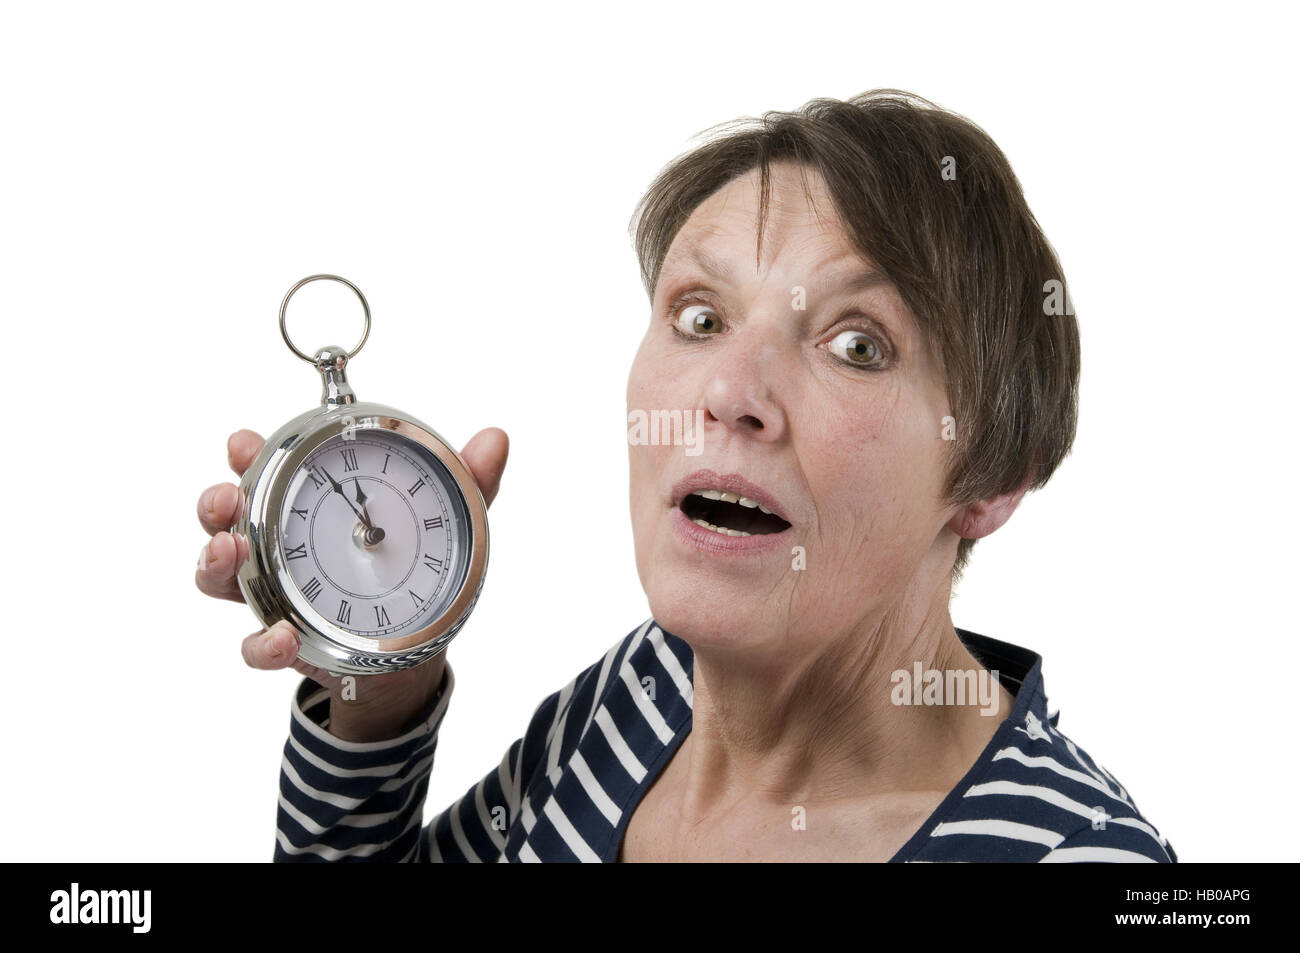 Fright with clock - Stock Image